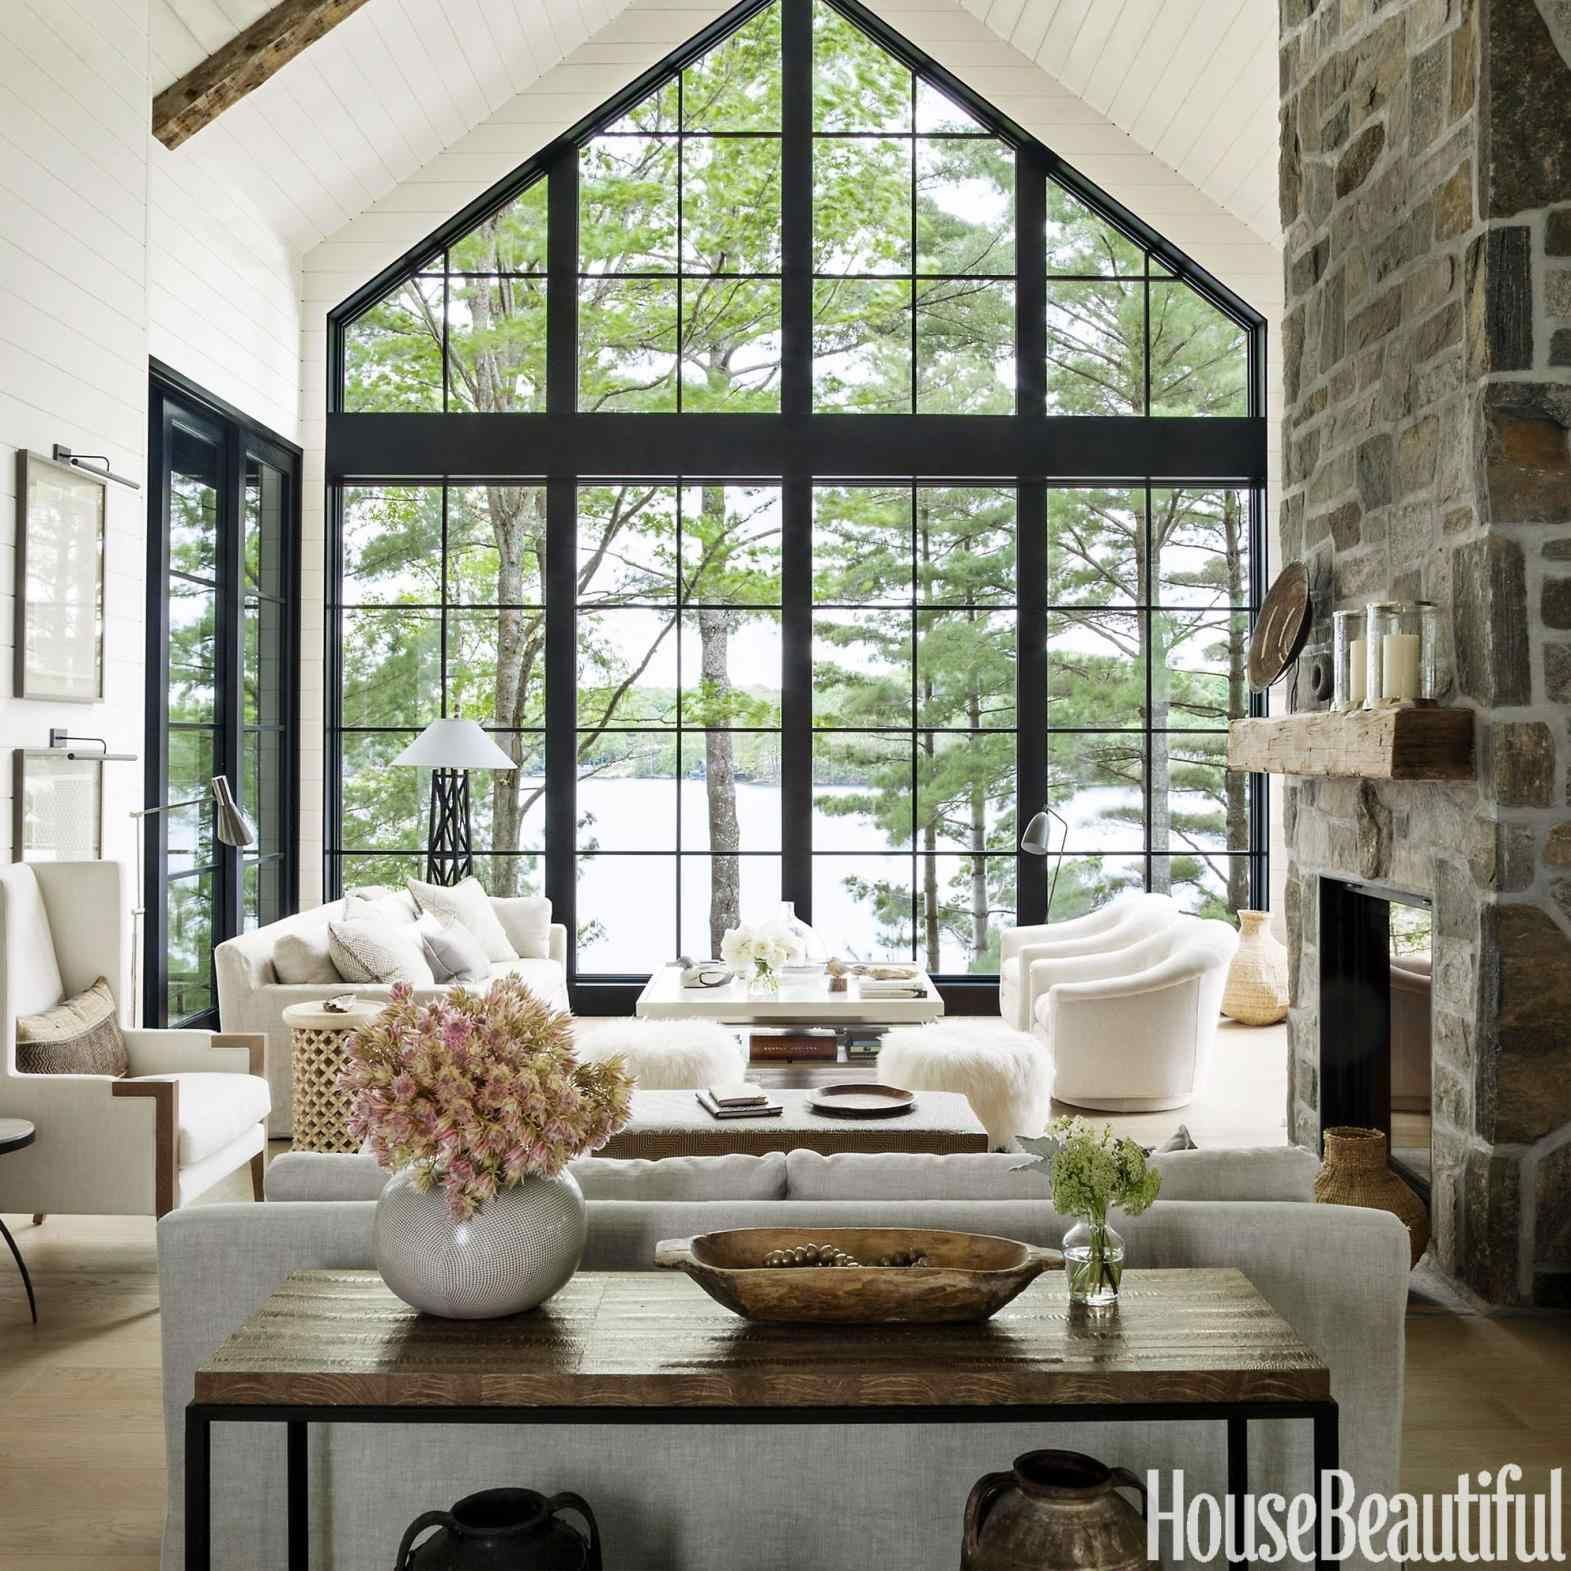 Bungalow Homes House Plans Small Modern Rustic Farmhouse Interior